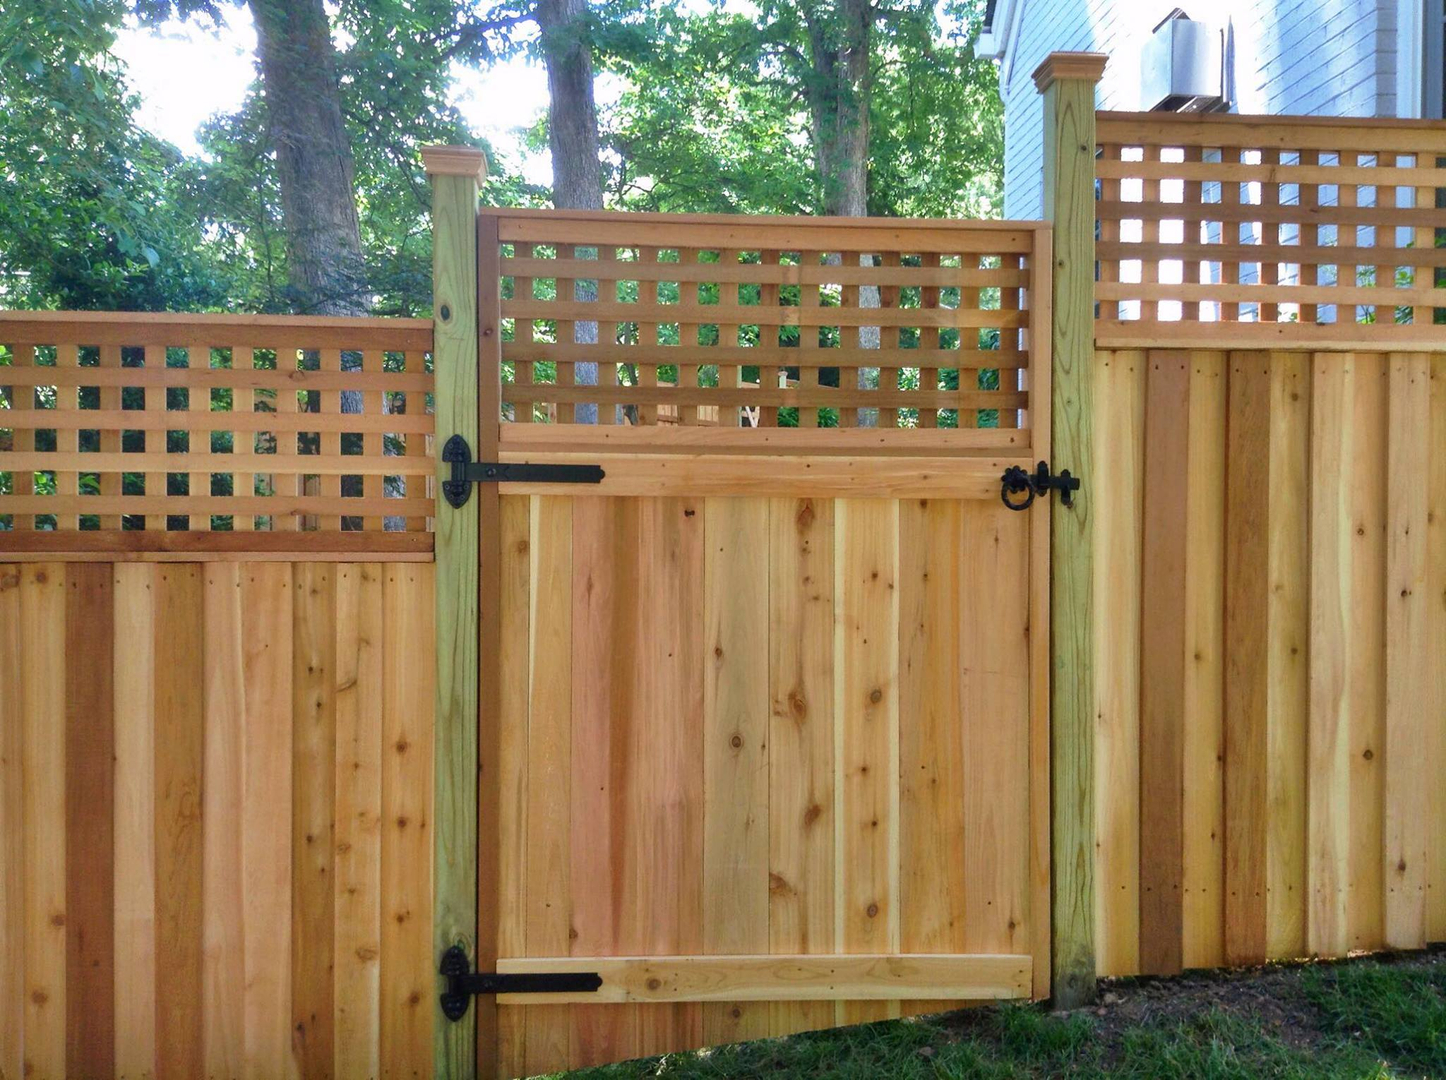 lions fence fence installation fence contractor wood fence